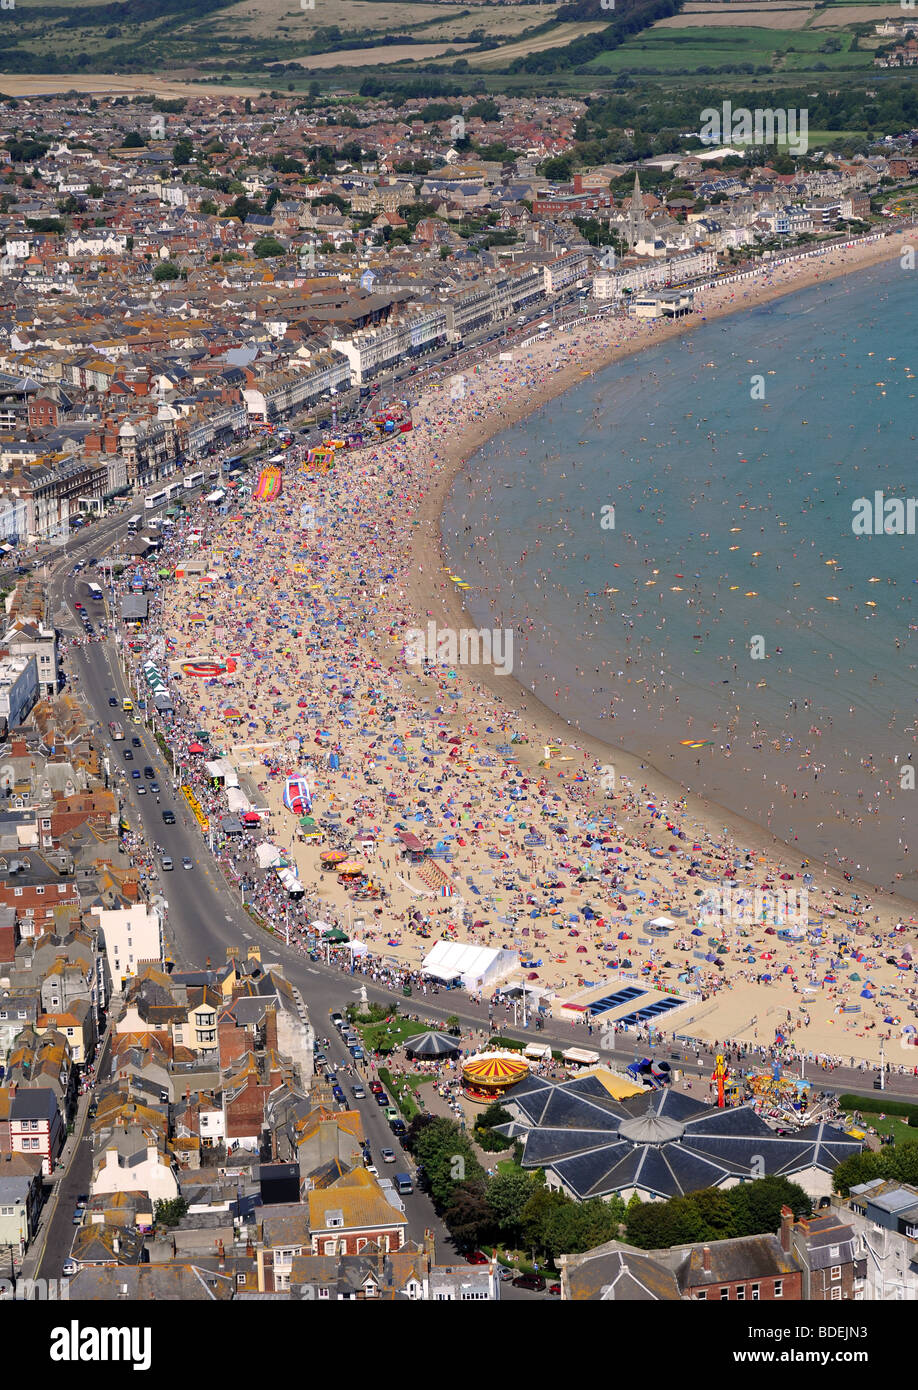 Beach, Weymouth beach, Aerial view of tourists on Weymouth beach during hot weather in Dorset, Britain, UK - Stock Image